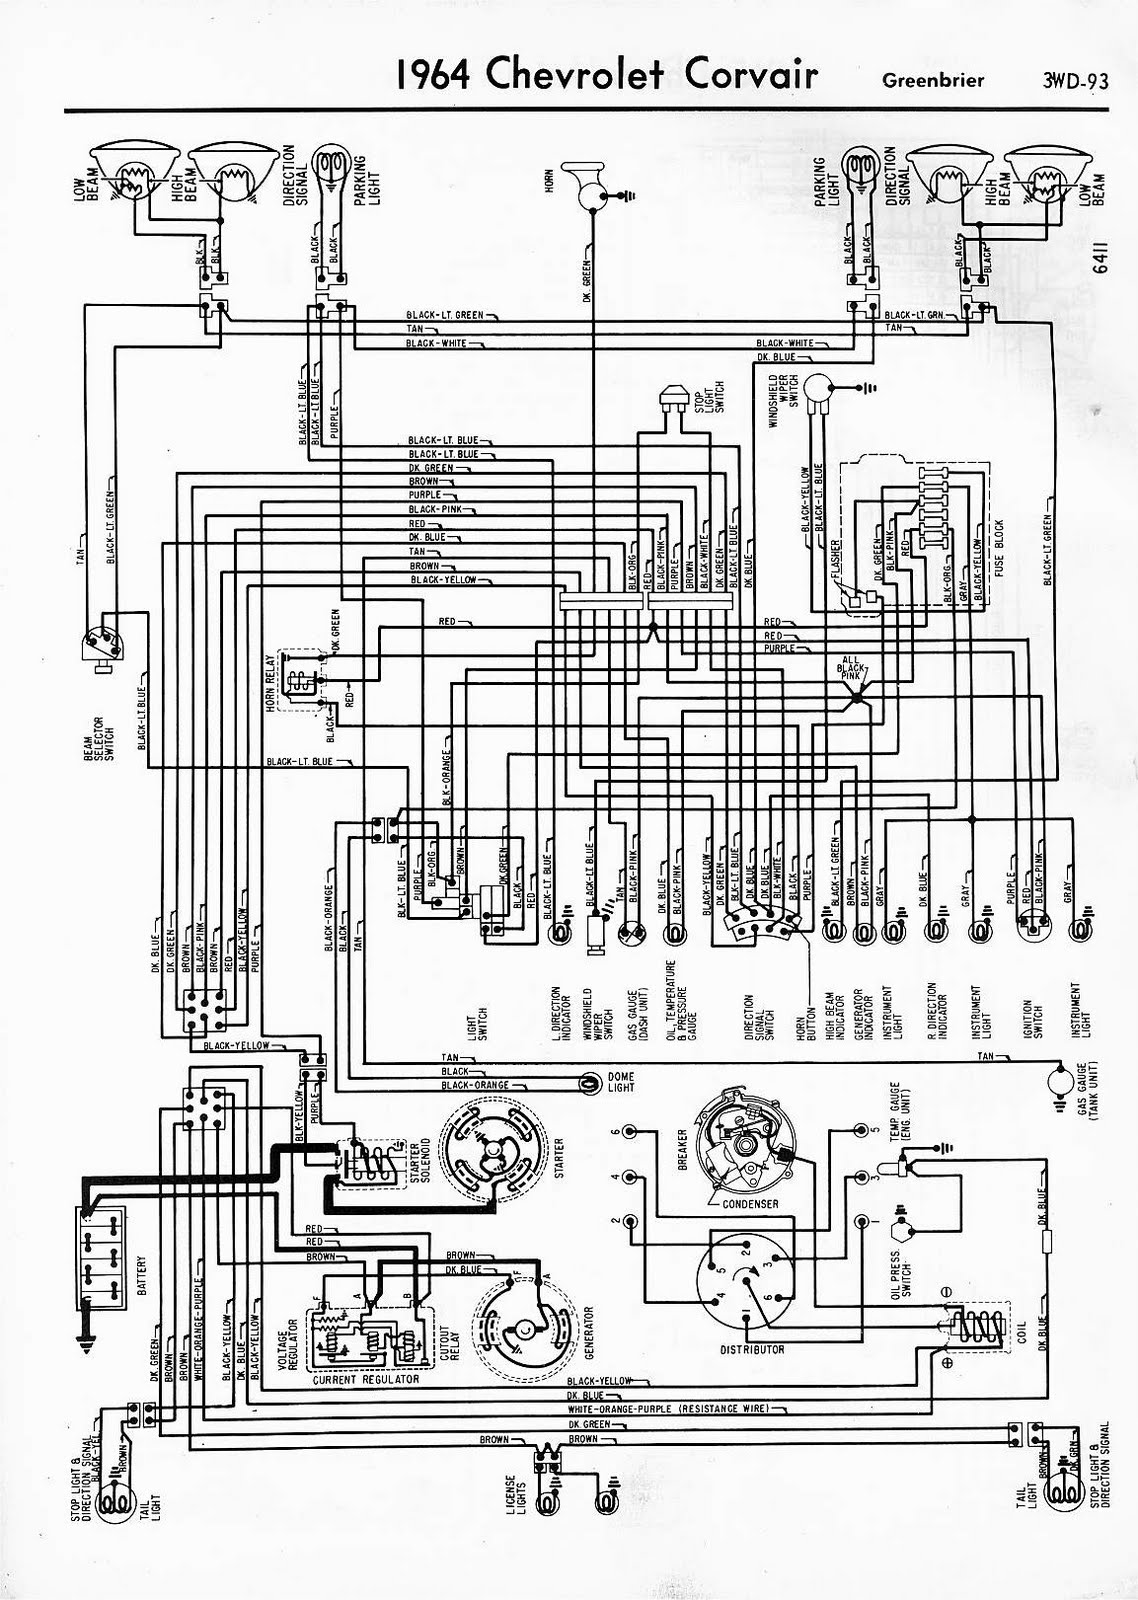 Free Auto Wiring Diagram: 1964 Chevrolet Corvair Greenbrier Wiring Diagram